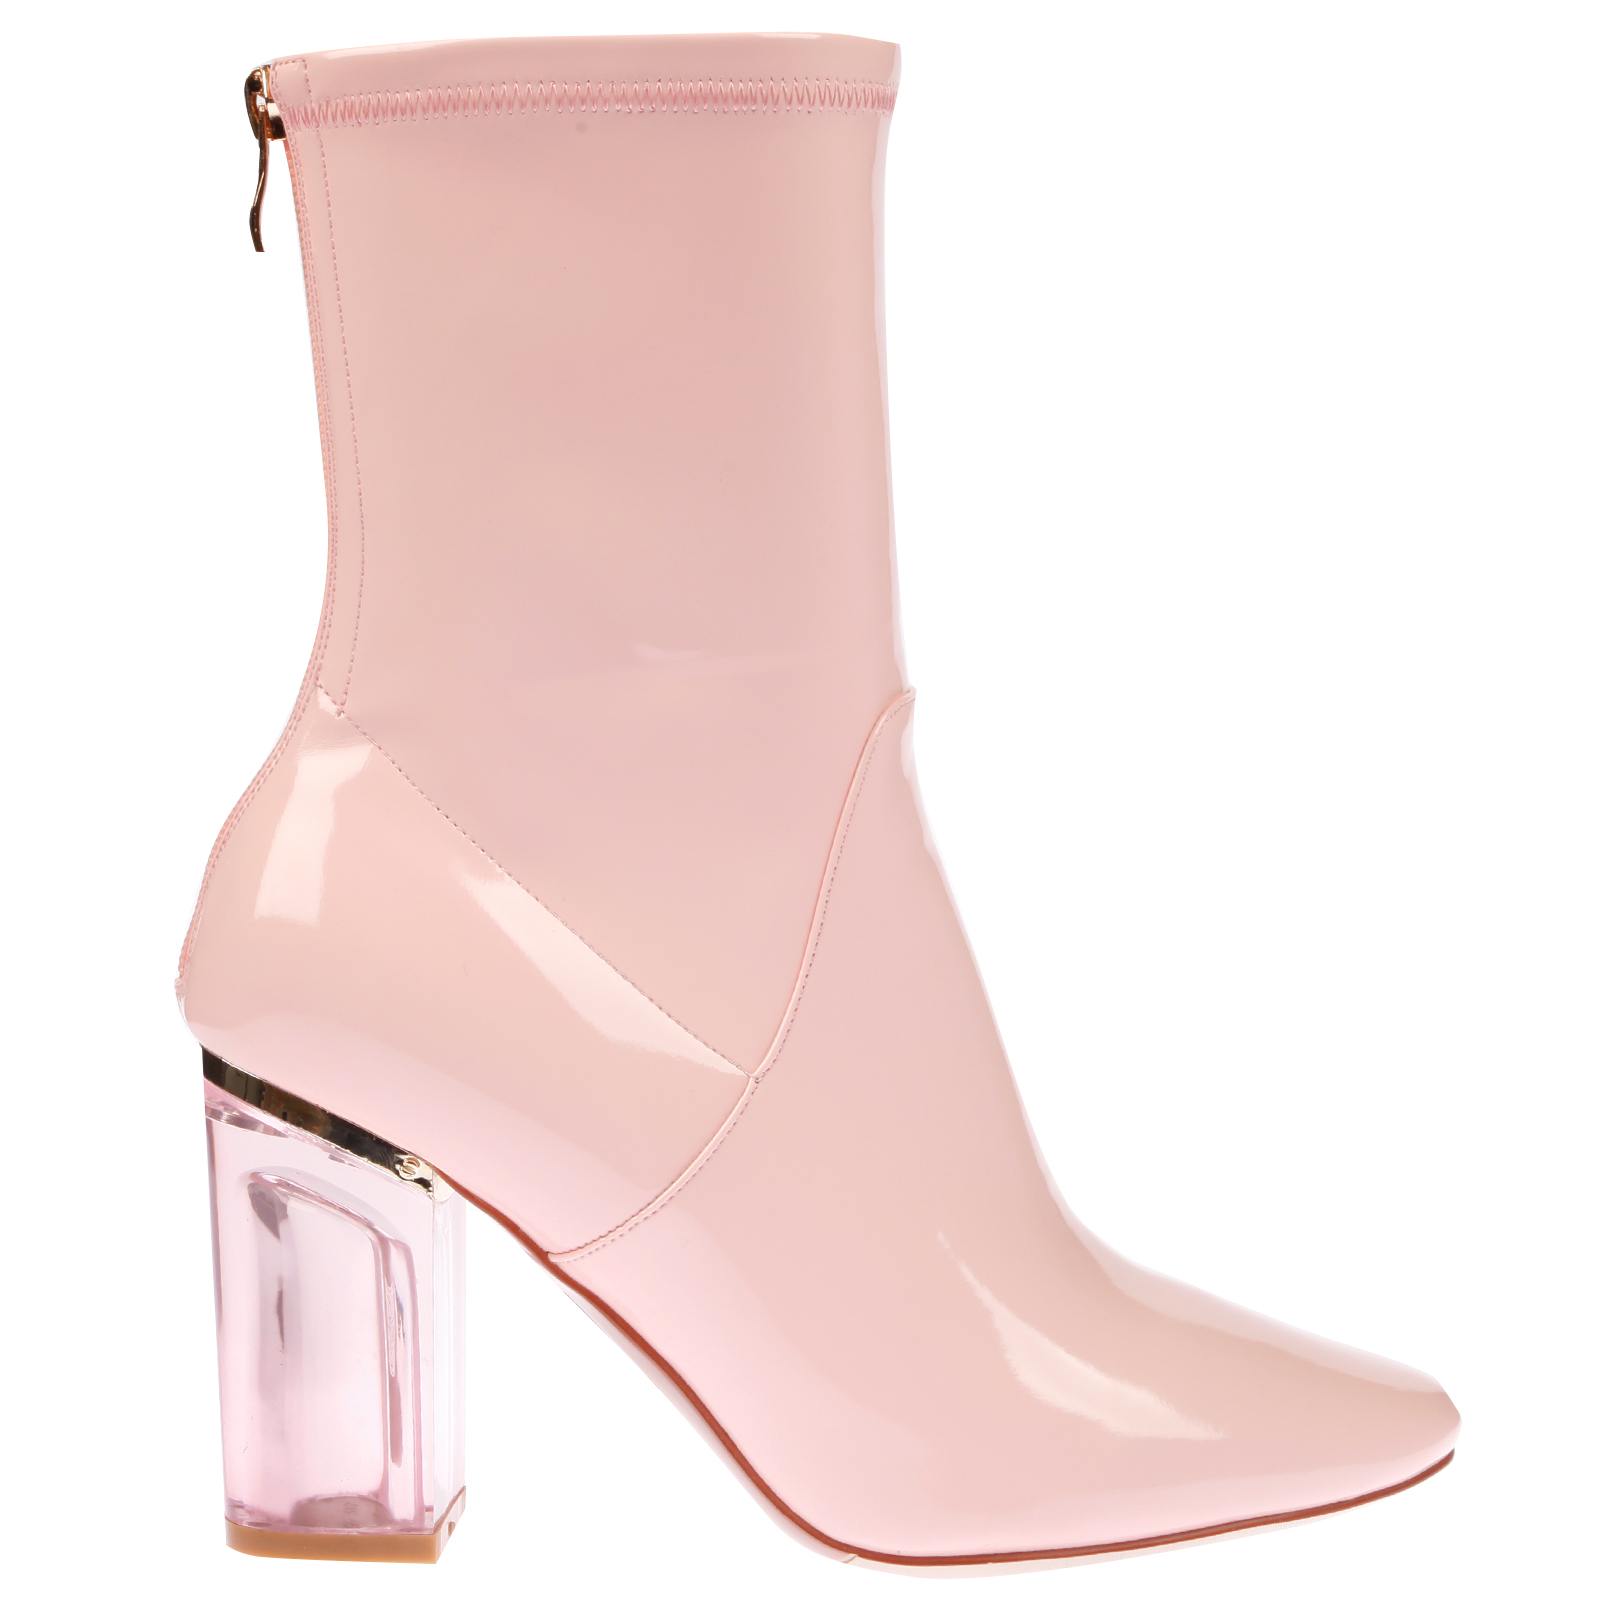 Shop for hot pink heels and shoes for Women, cheap discount prices on pink high heels at sashimicraft.ga Buy hot pink platform pumps in sued, lace, and patient PU on several different styles like barbie pink peep toe pumps, sandals and wedges.